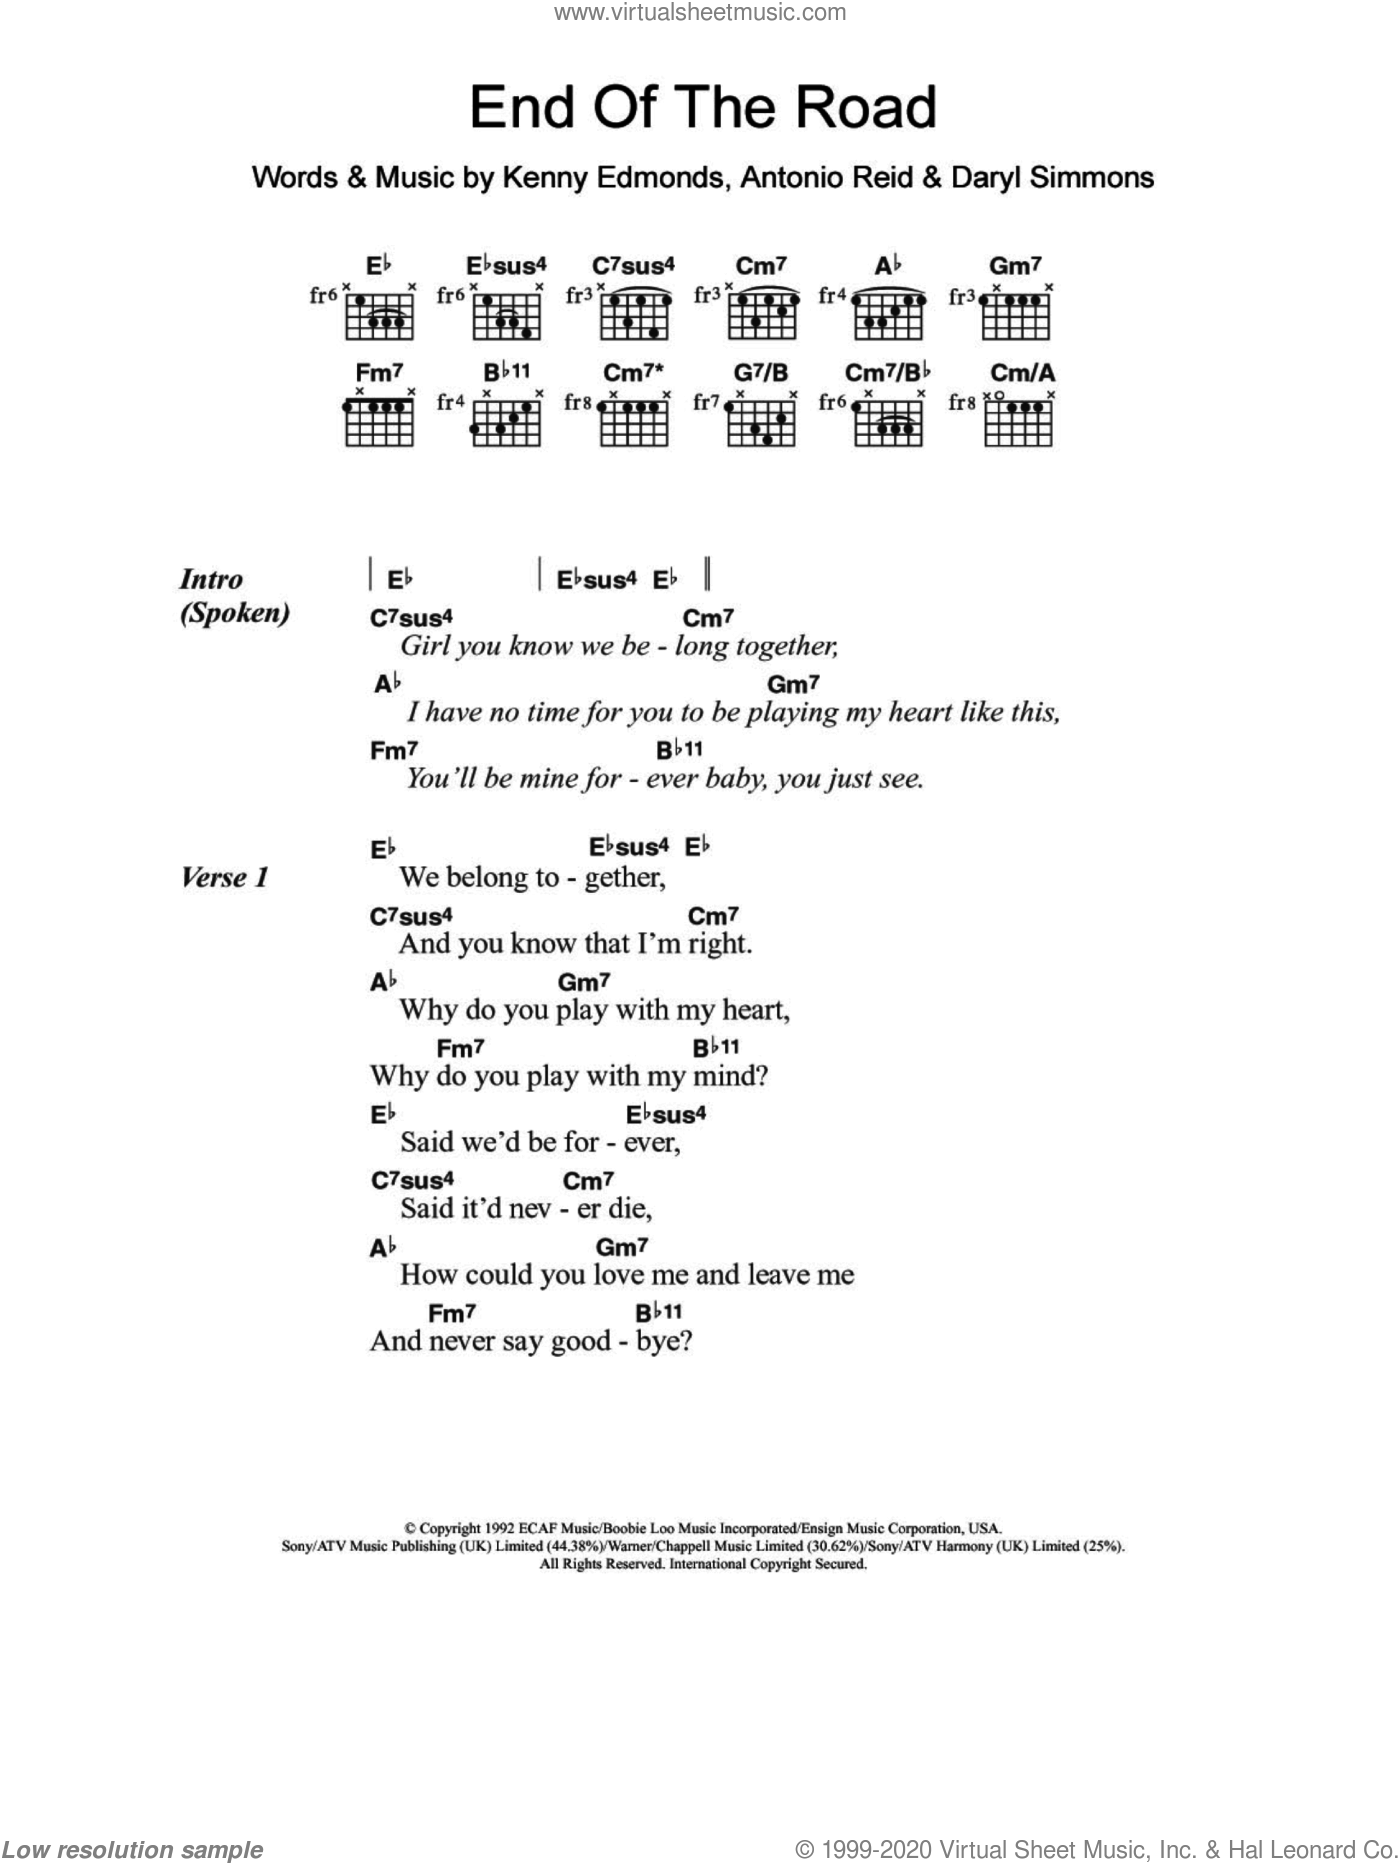 End Of The Road sheet music for guitar (chords) by Kenneth Edmonds